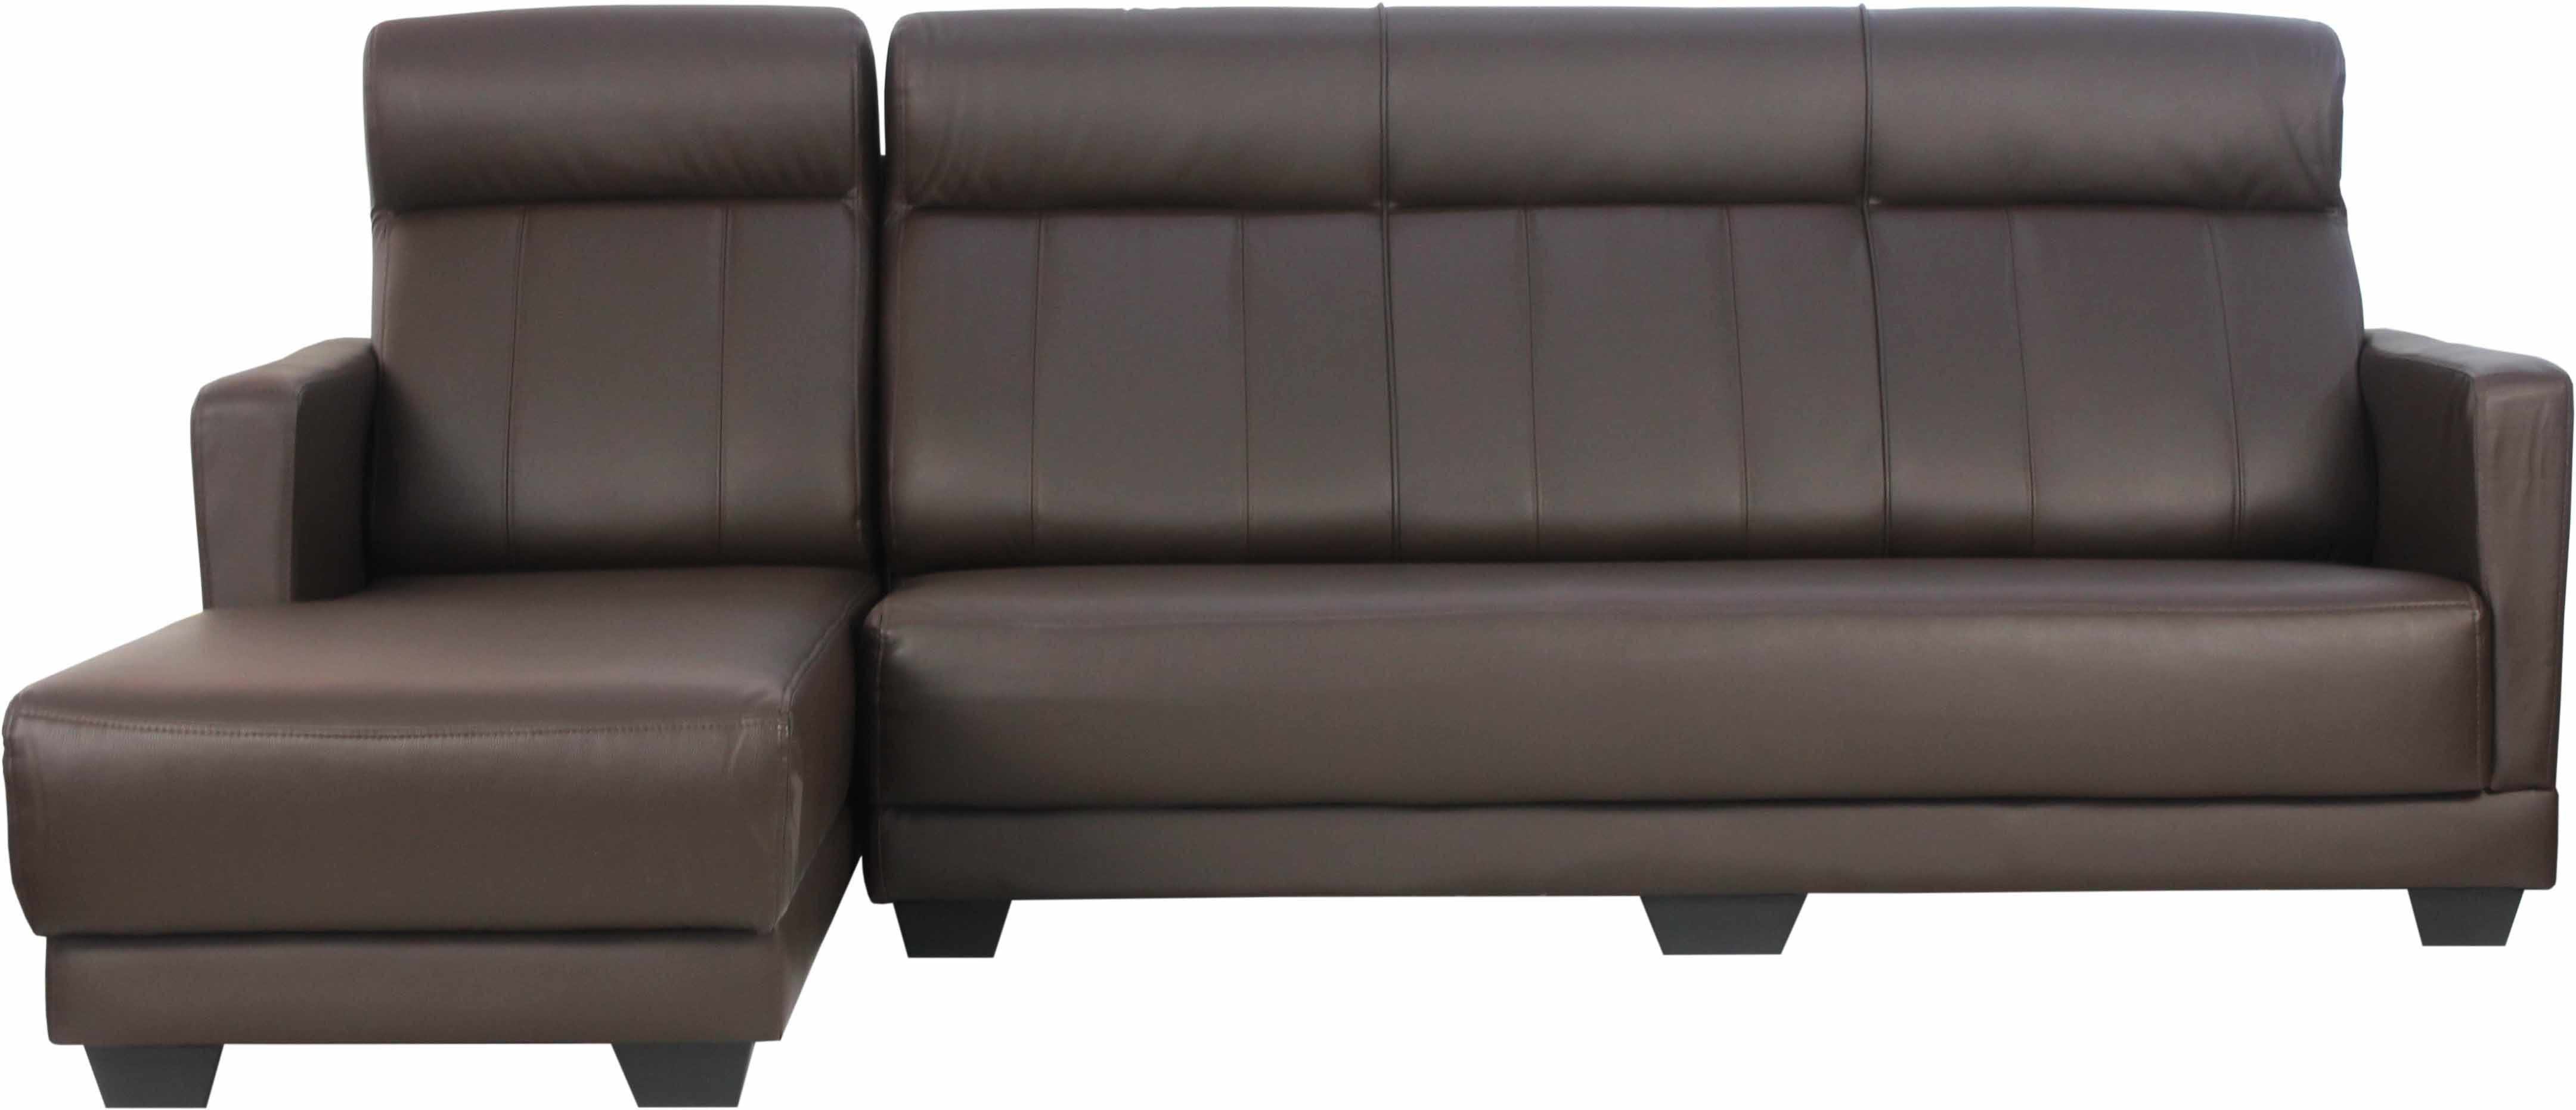 7 seater wooden sofa set designs with down cushions stacy 4 l shaped furniture and home décor